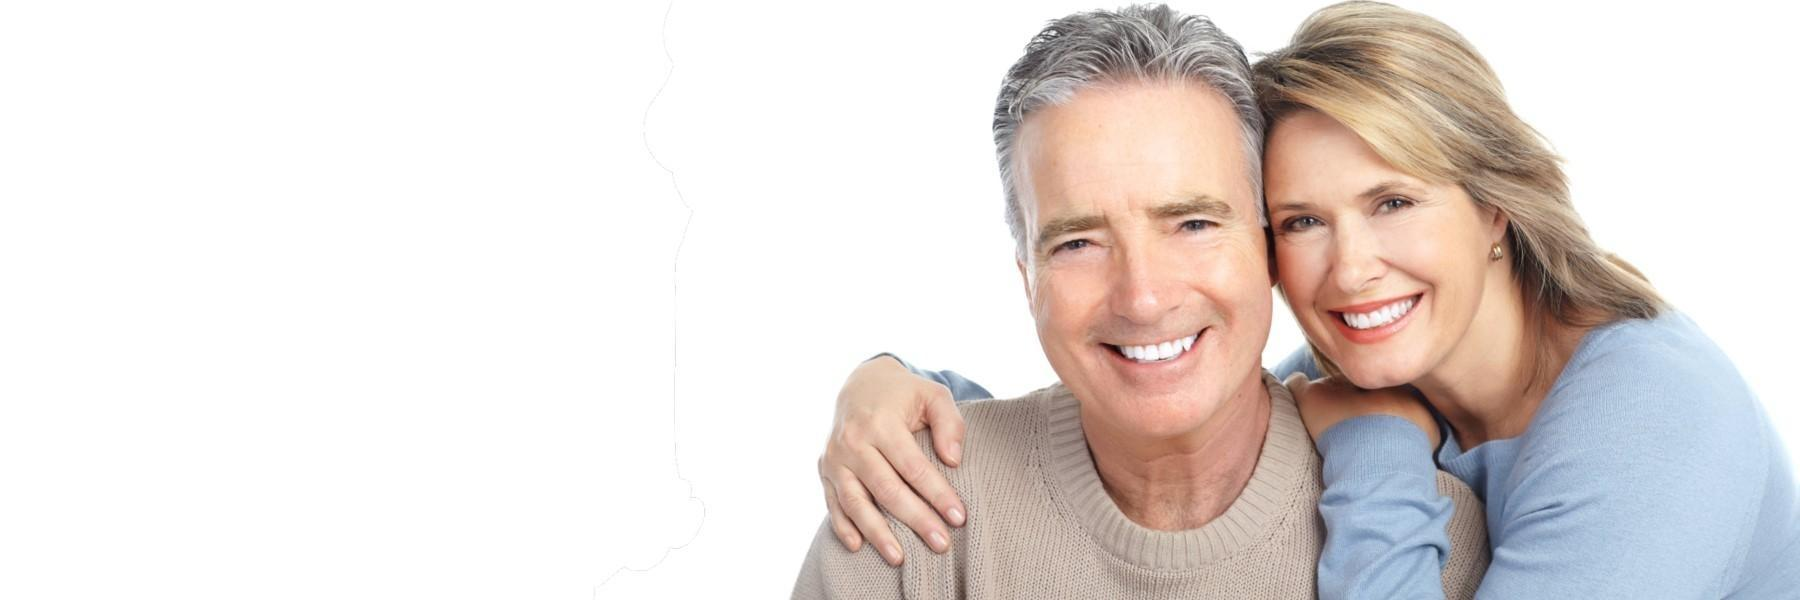 Dentures and Partial Dentures banner image